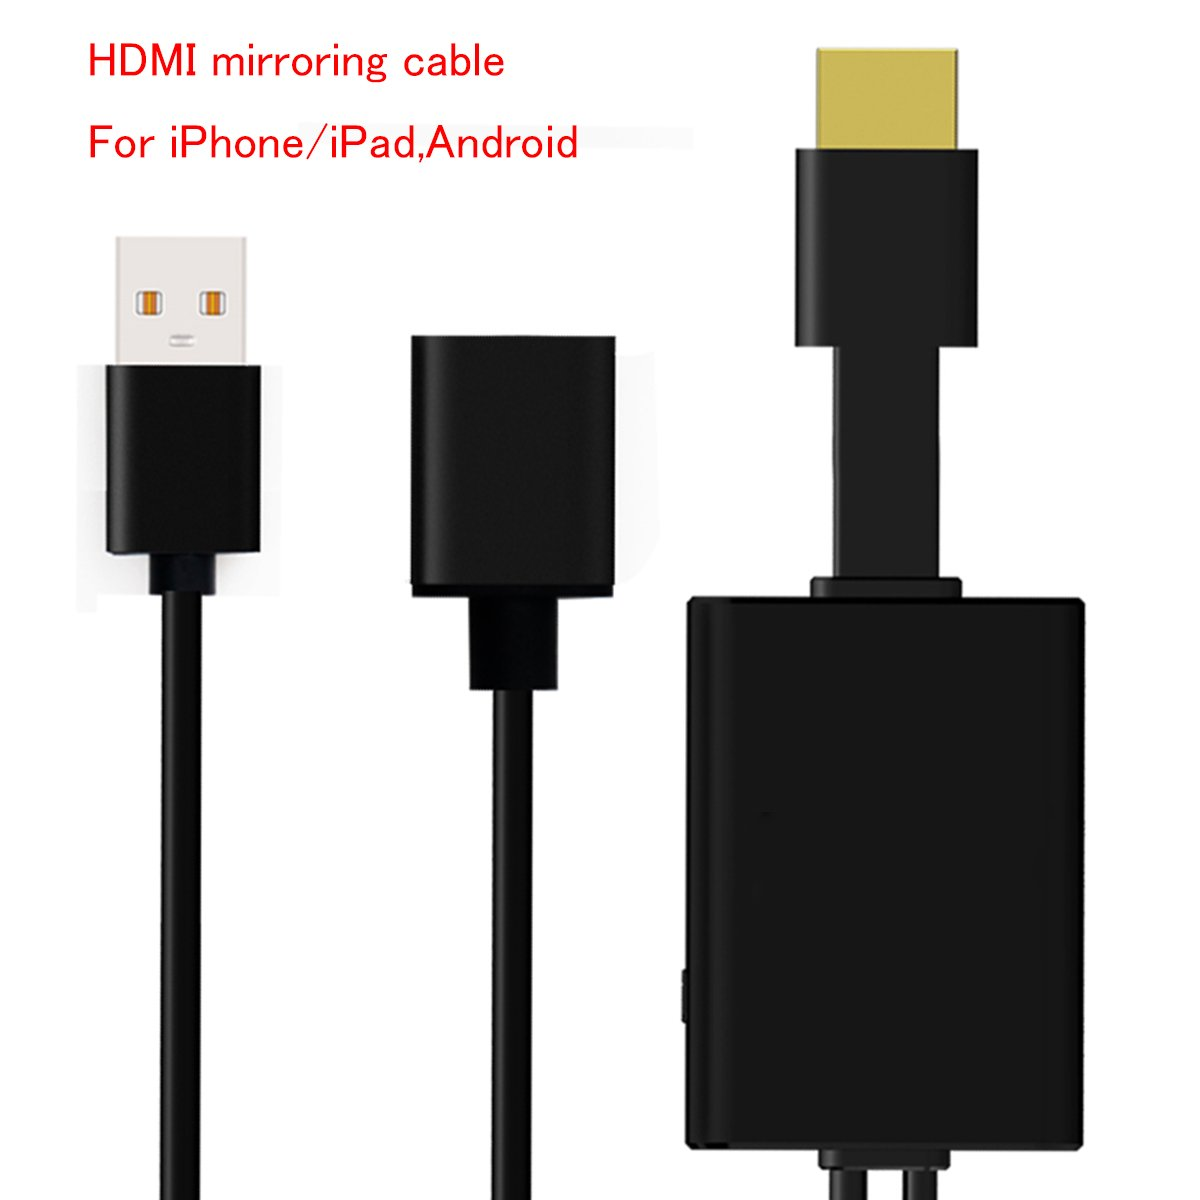 HDMI Display Dongle Lithgning to HDMI Android to HDMI Play 1080p Lightning Digital AV Adapter for Mirroring Mobile Phone Screen to TV/Projector HDMI Adapter for Android/iPhone/iPad device